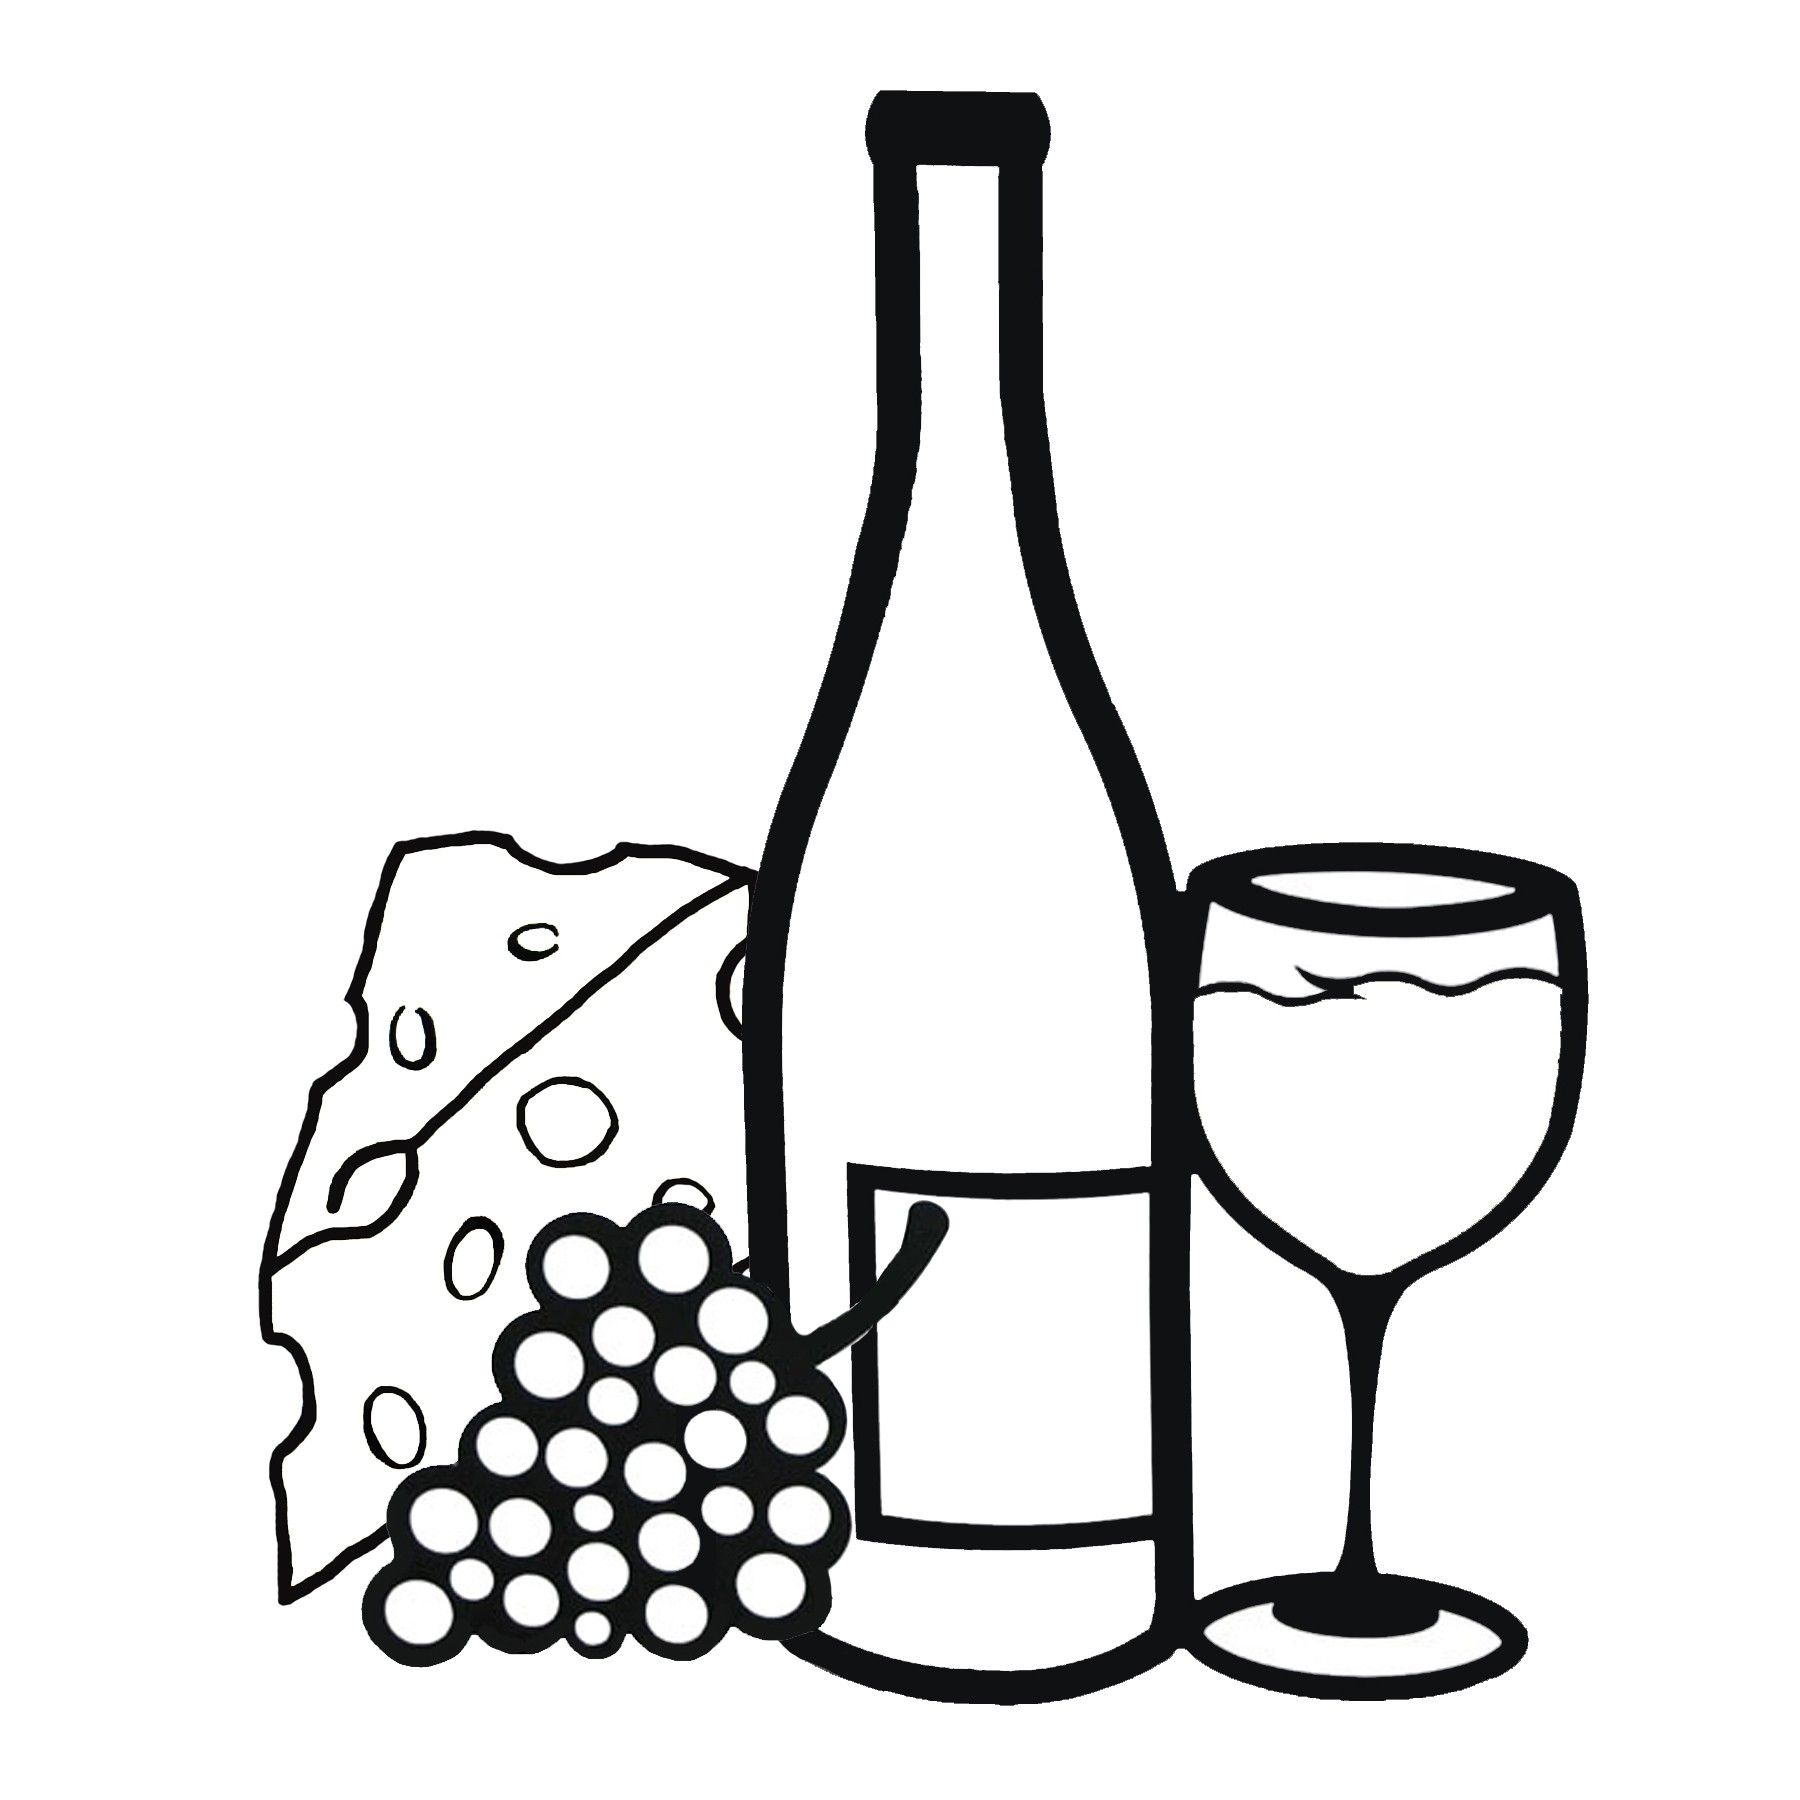 medium resolution of images for wine glass and grapes clipart